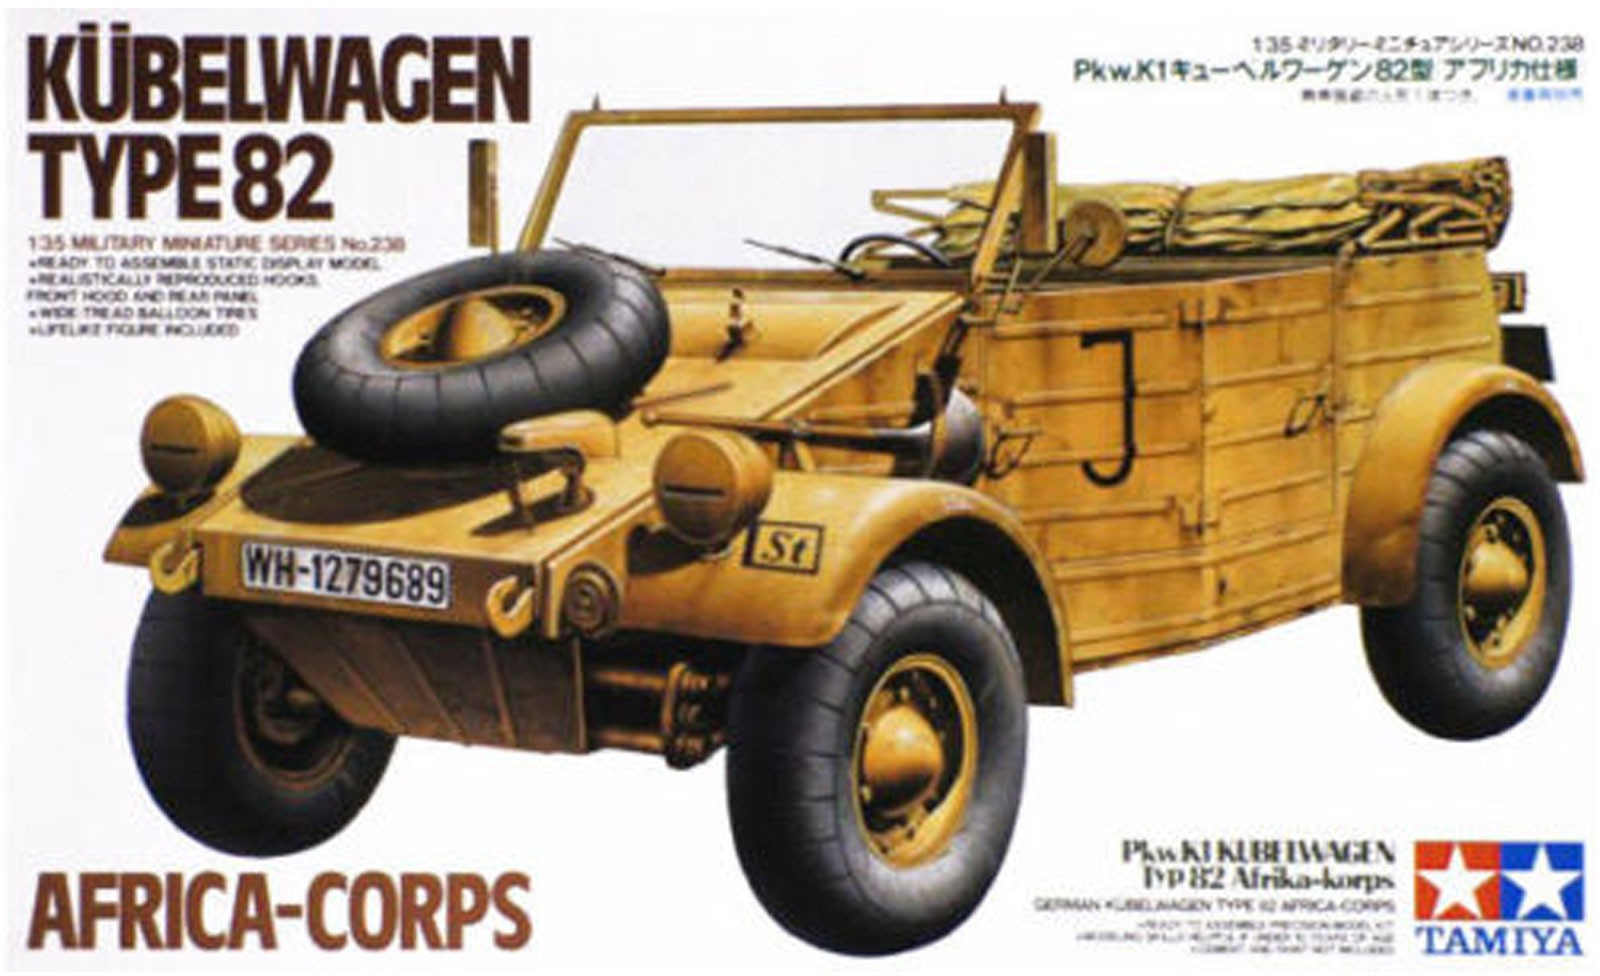 German Kubelwagen Type 82 - Africa Corps - Tamiya 35238 - plastic model kit - 1/35 scale